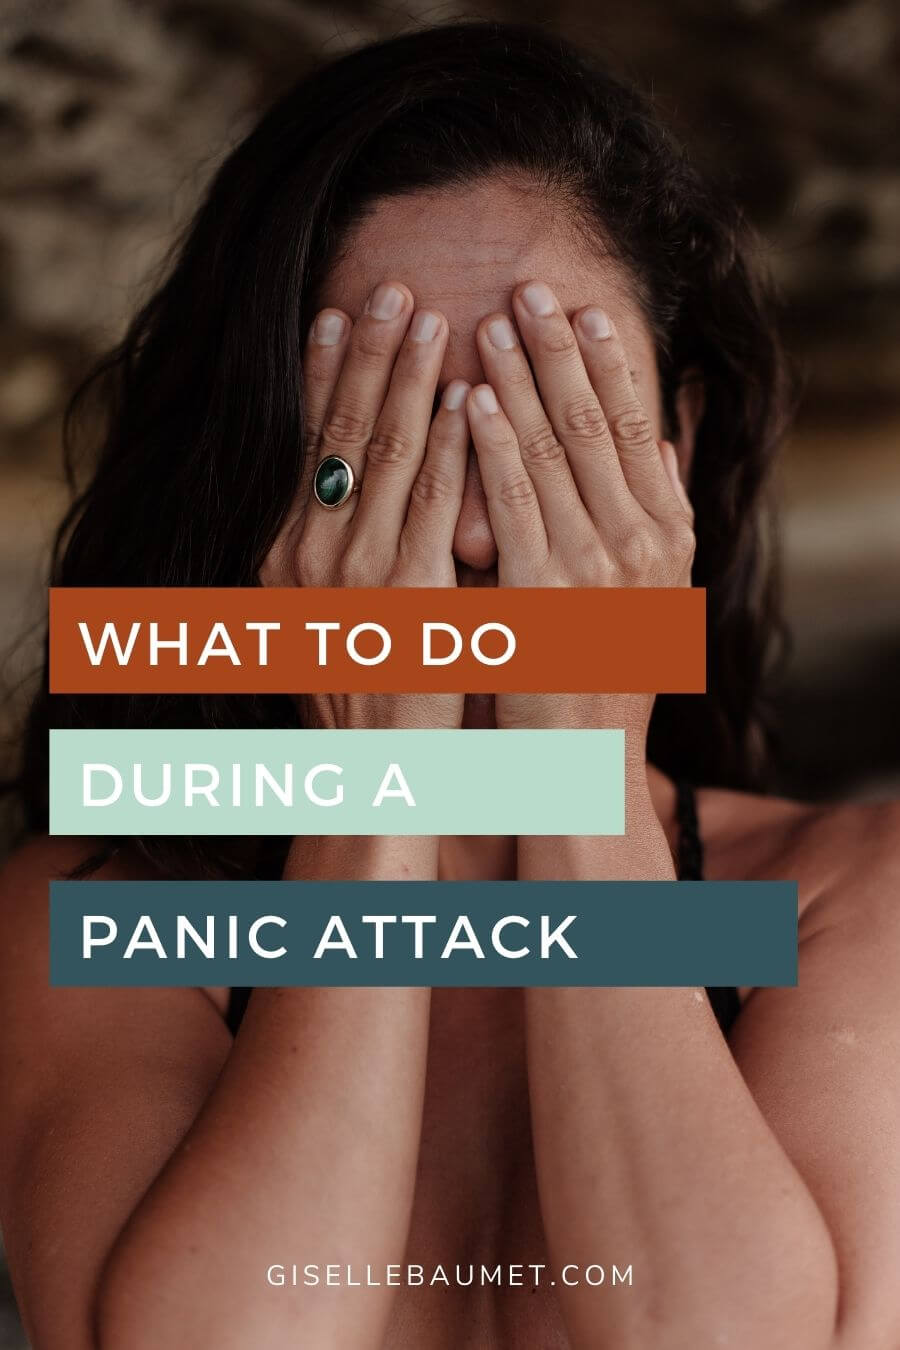 Easy Breathing Exercises to Control Anxiety, Stress, and Panic Attacks